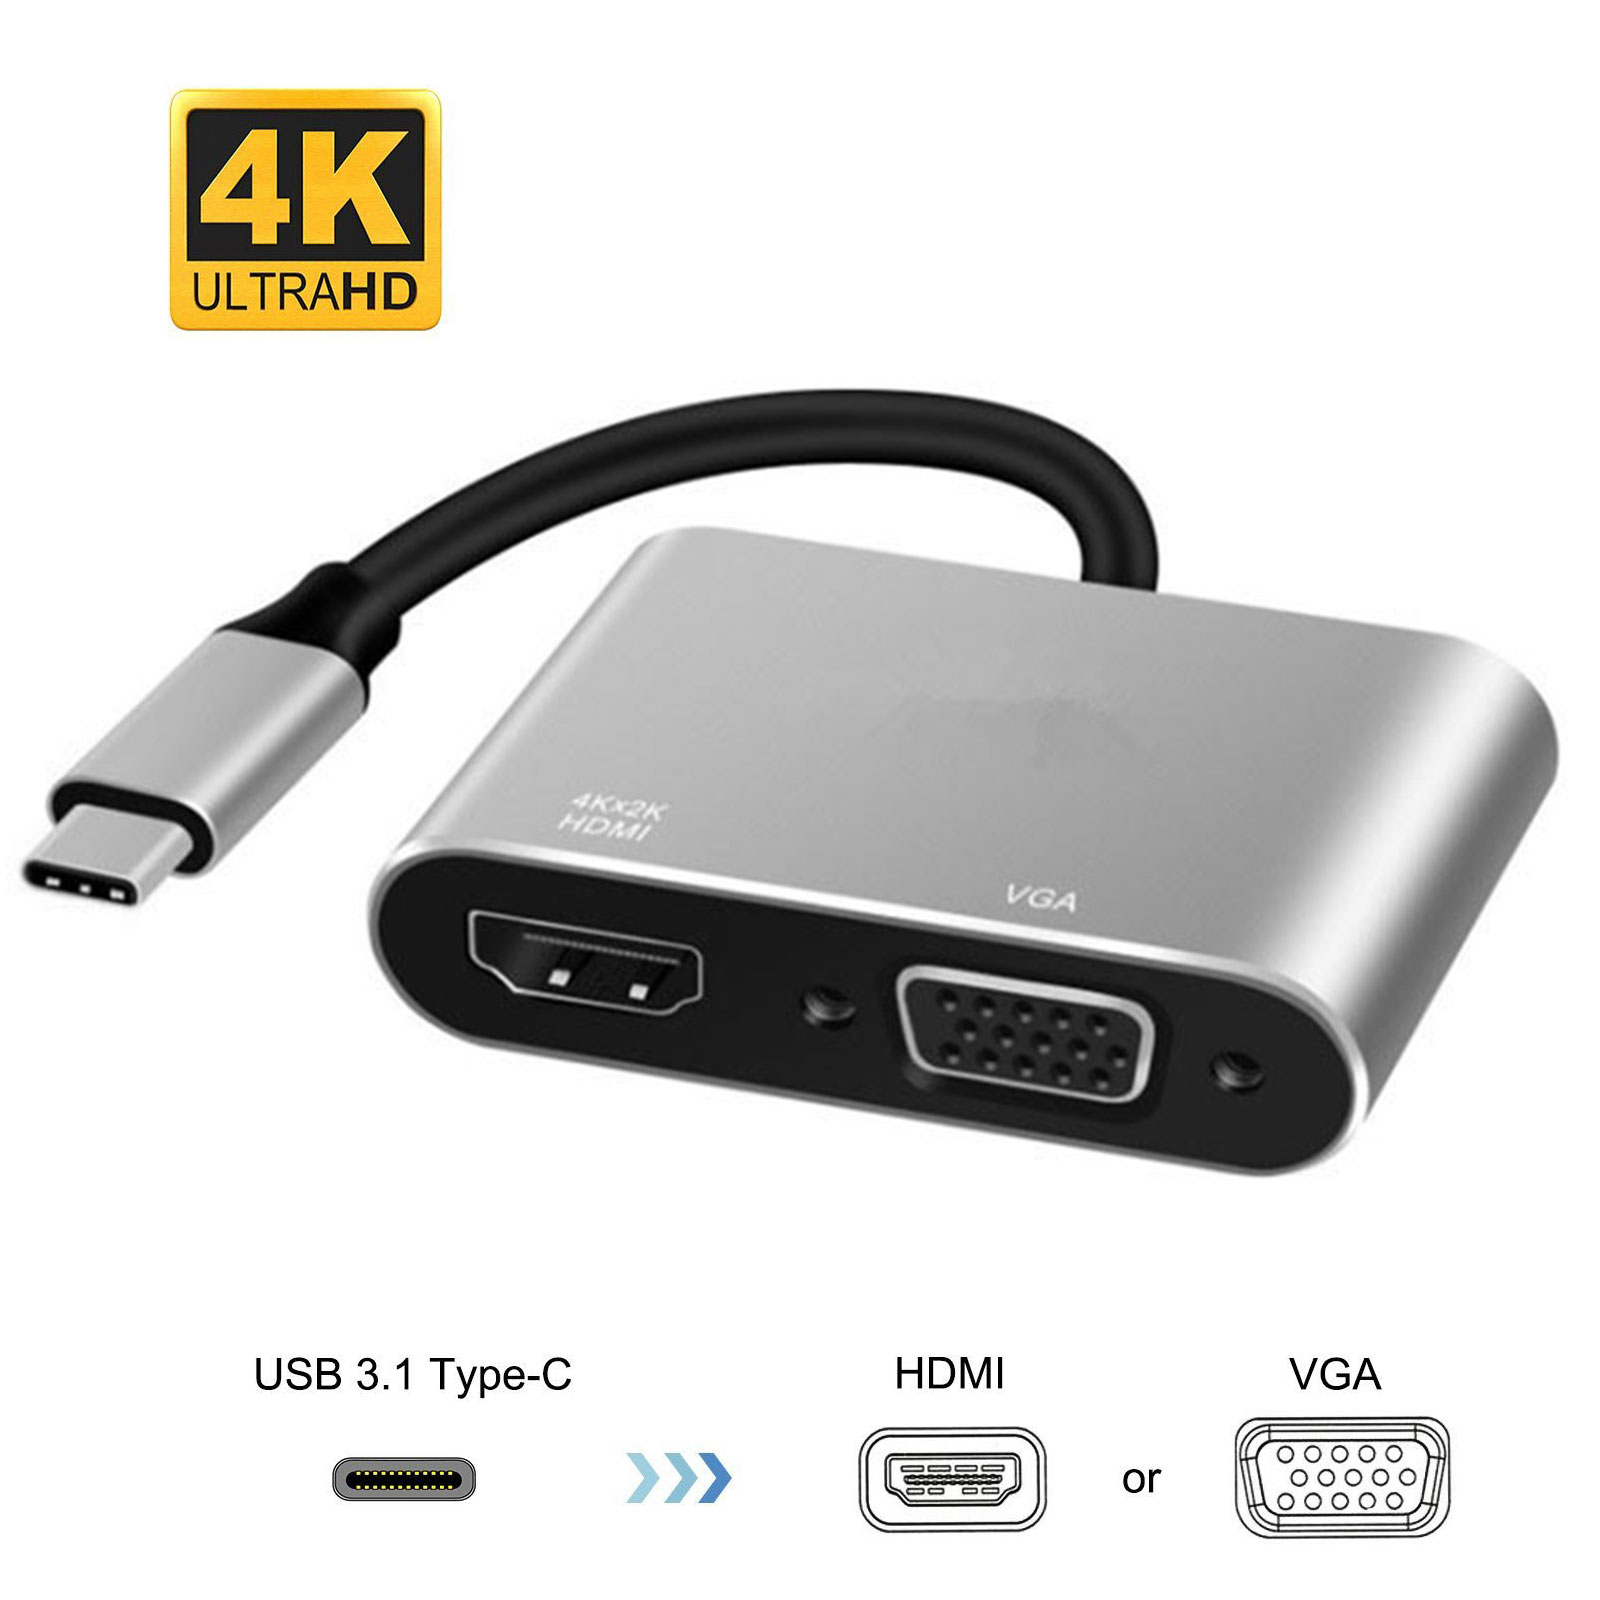 EEEkit USB-C USB 3.1 Type C to HDMI & Vga Adapter Converter 4K 1080P For Macbook, Chromebook, Samsung PC, Supports Galaxy S9/S8/S8+/ Note 8/ LGG5